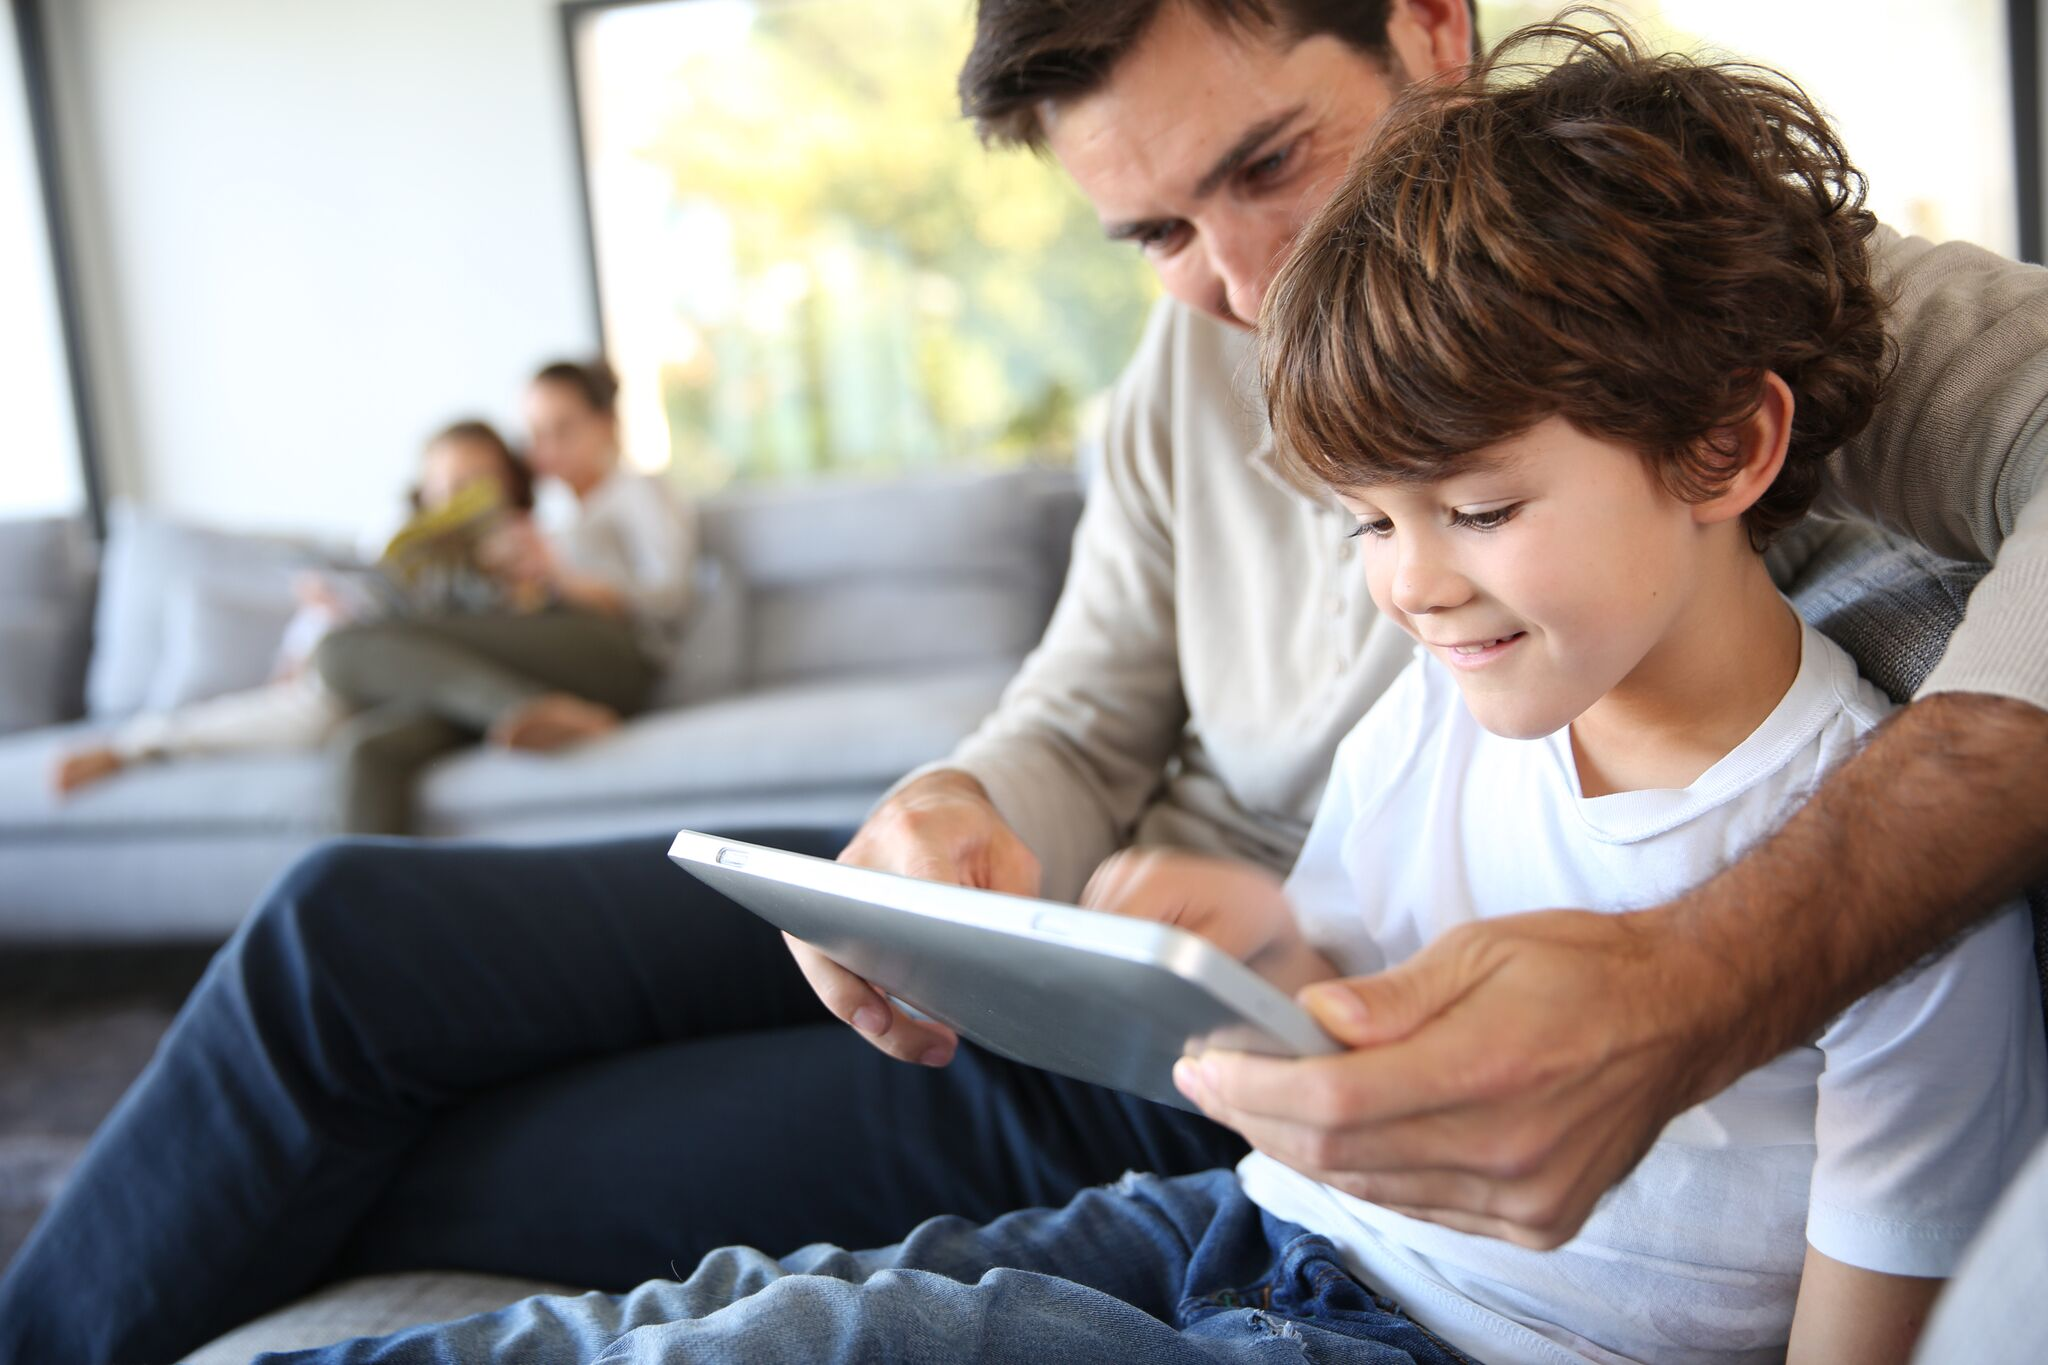 Our 6 Favorite Apps for Kids with Speech Impediments